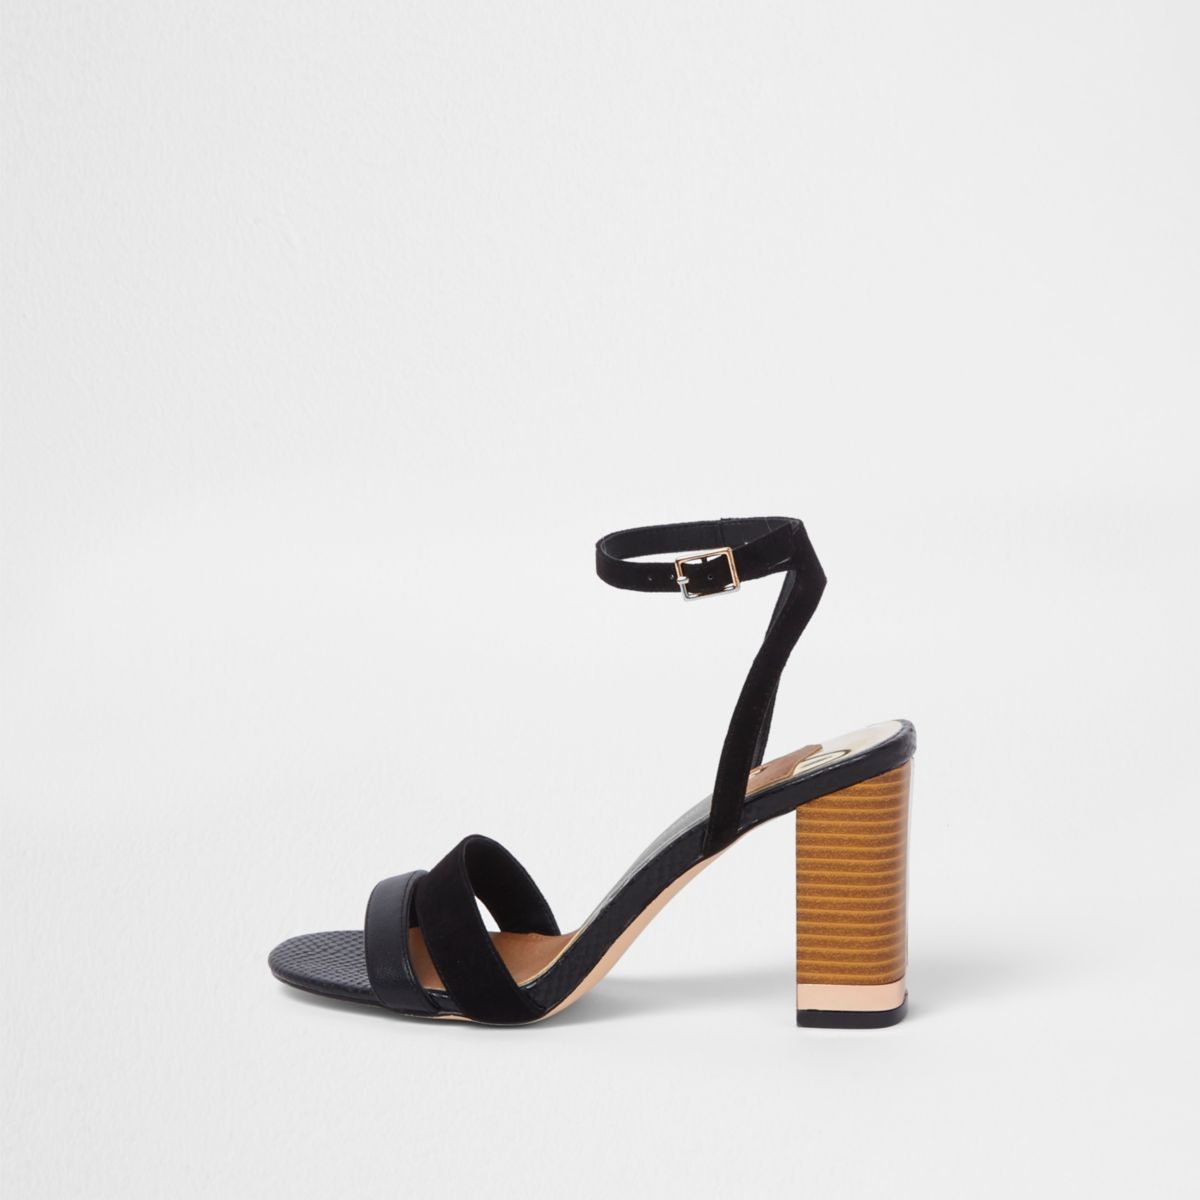 Barely There – Schwarze Blockabsatzsandalen in weiter Passform